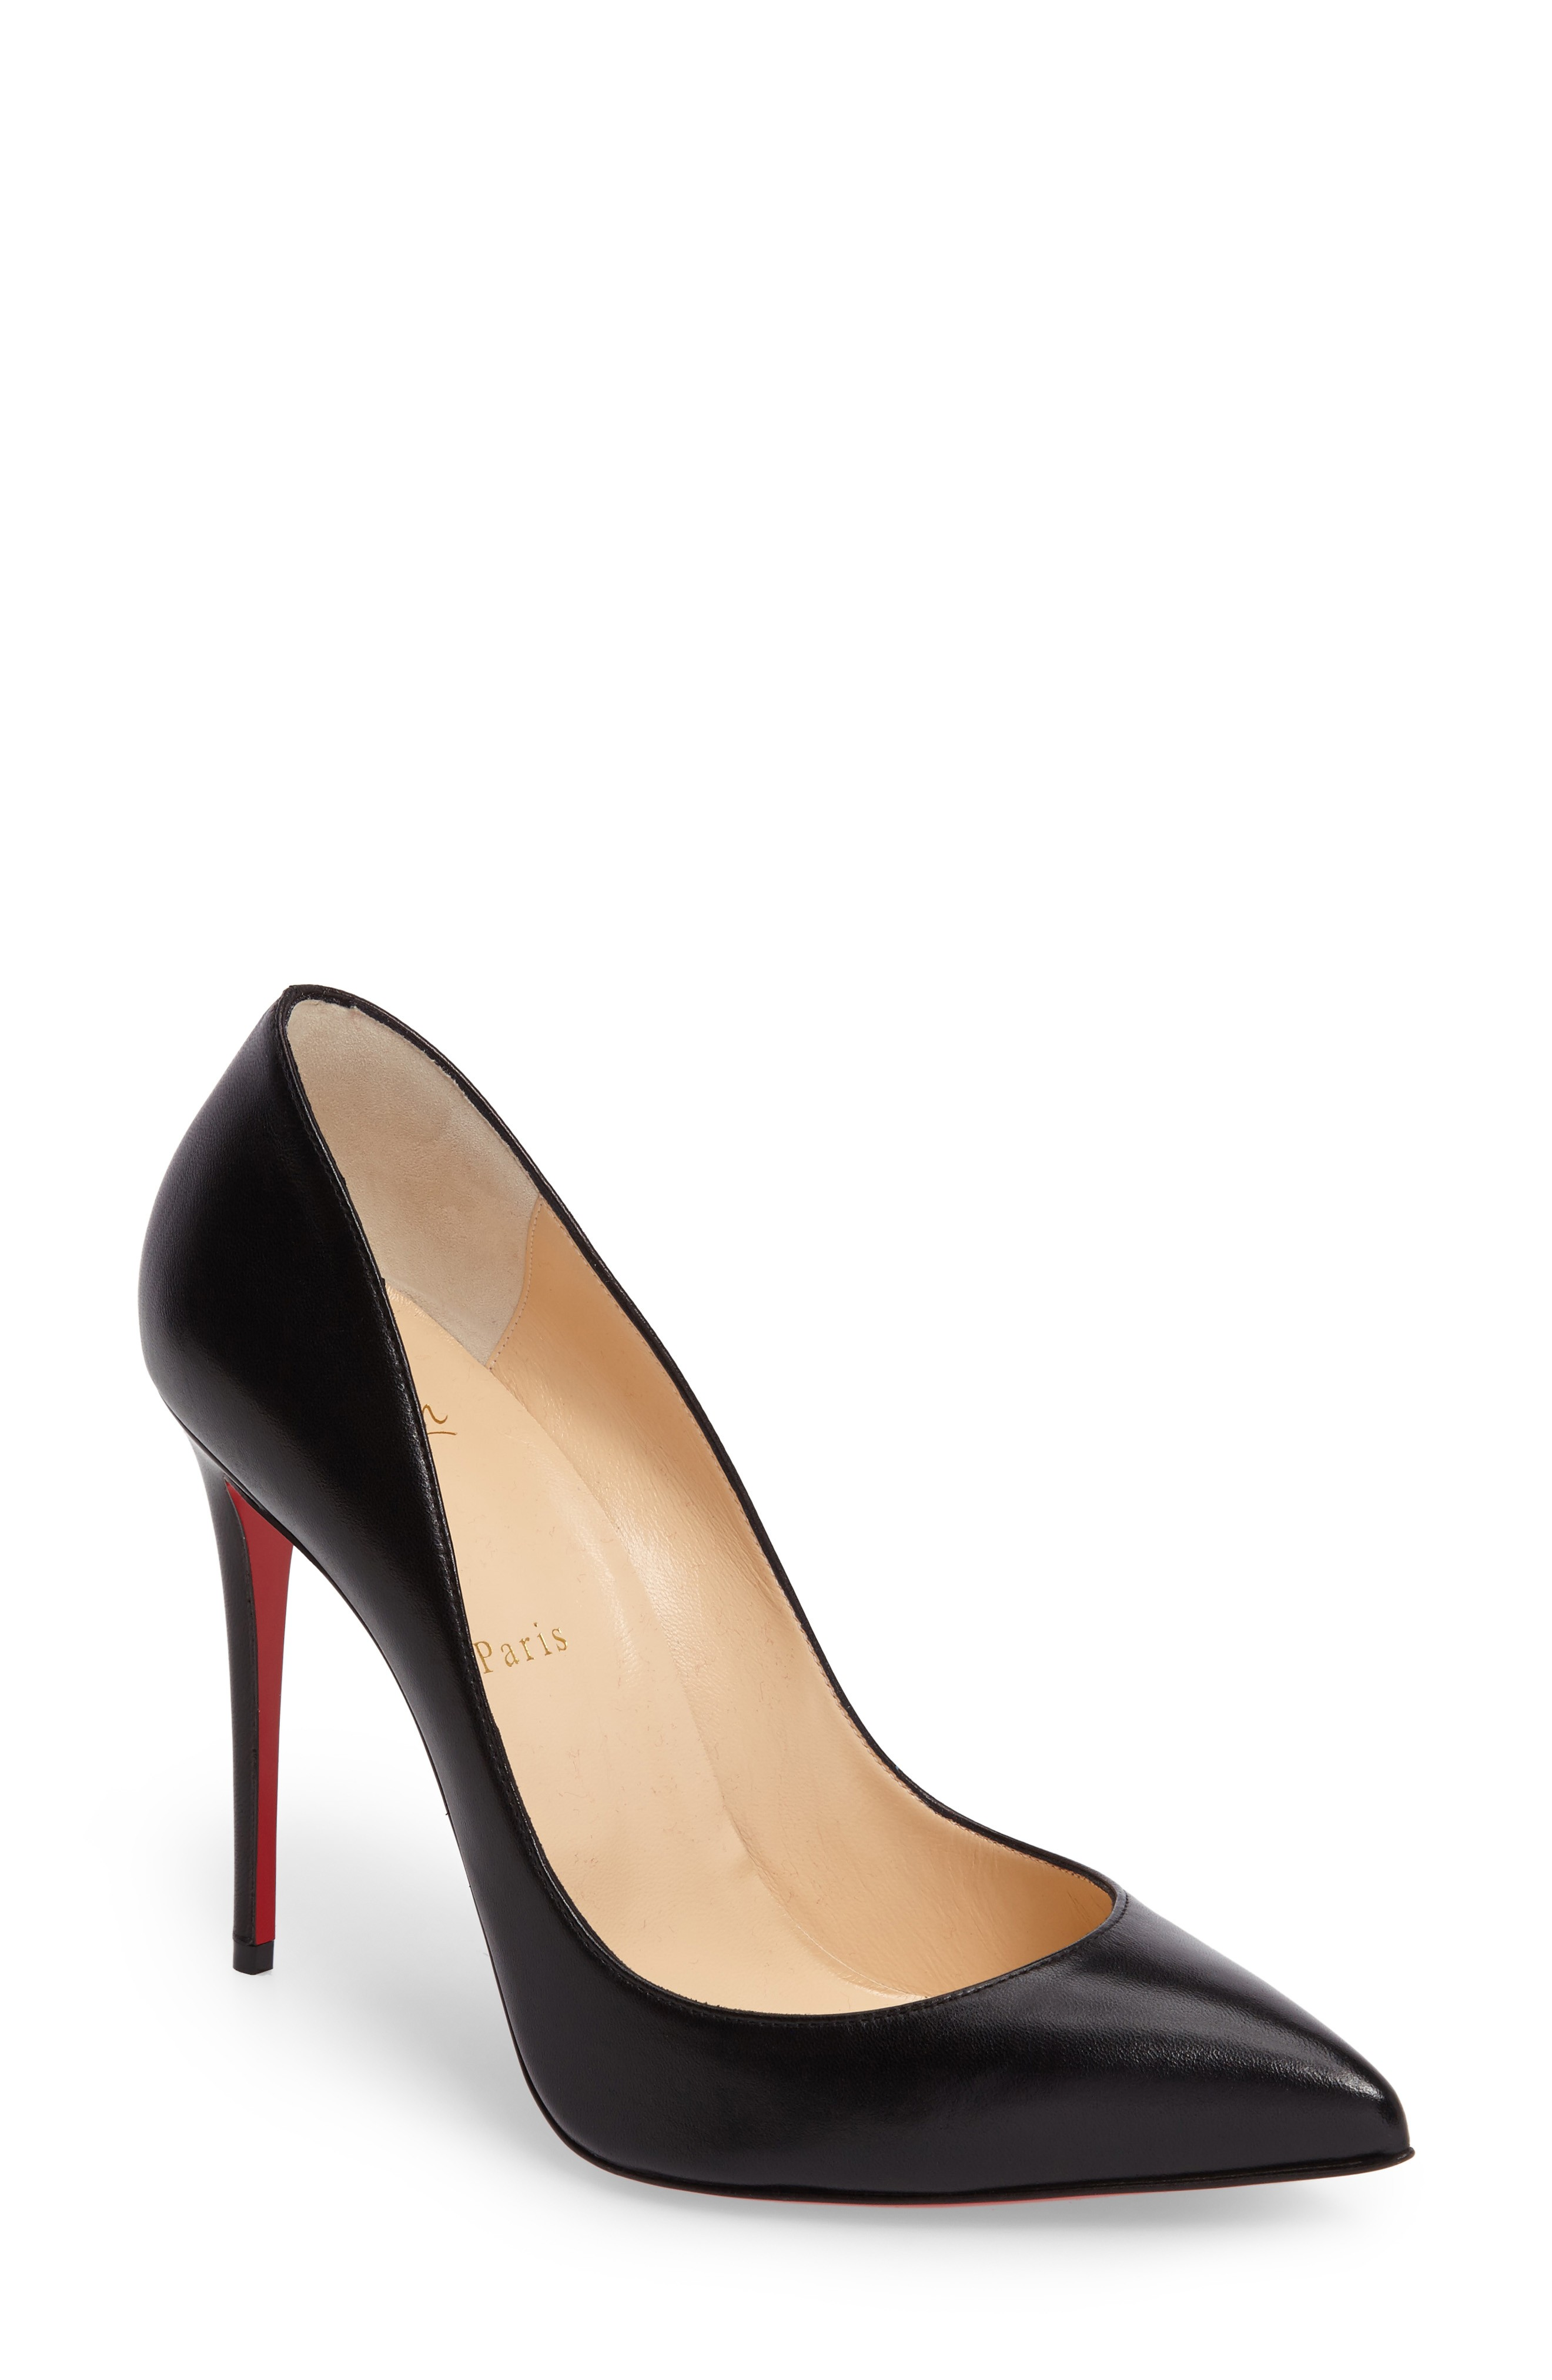 2640x4048 Women's Special Size Shoes